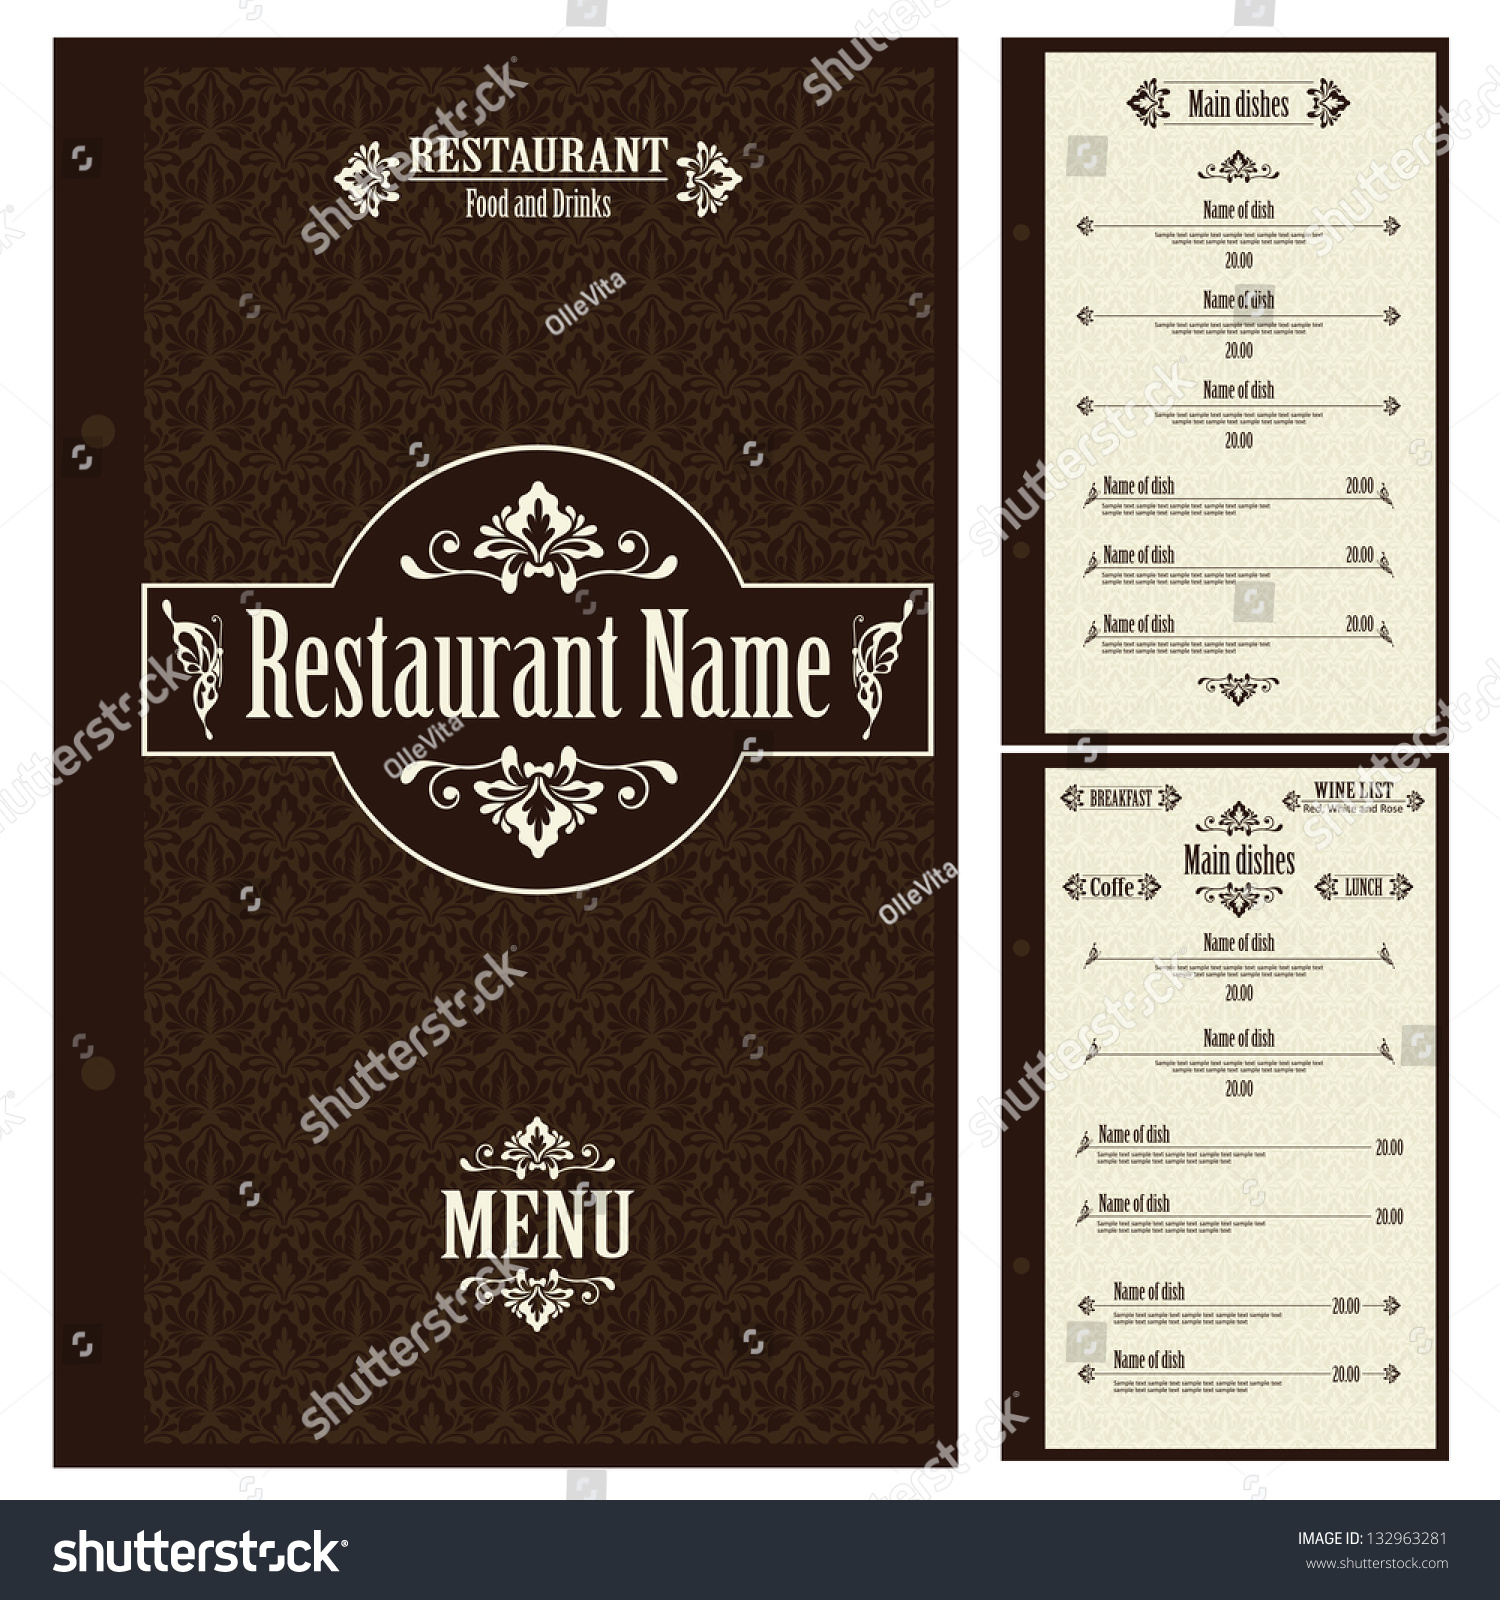 Restaurant Menu Design Template Vector Vector 132963281 – Restaurant Menu Design Templates